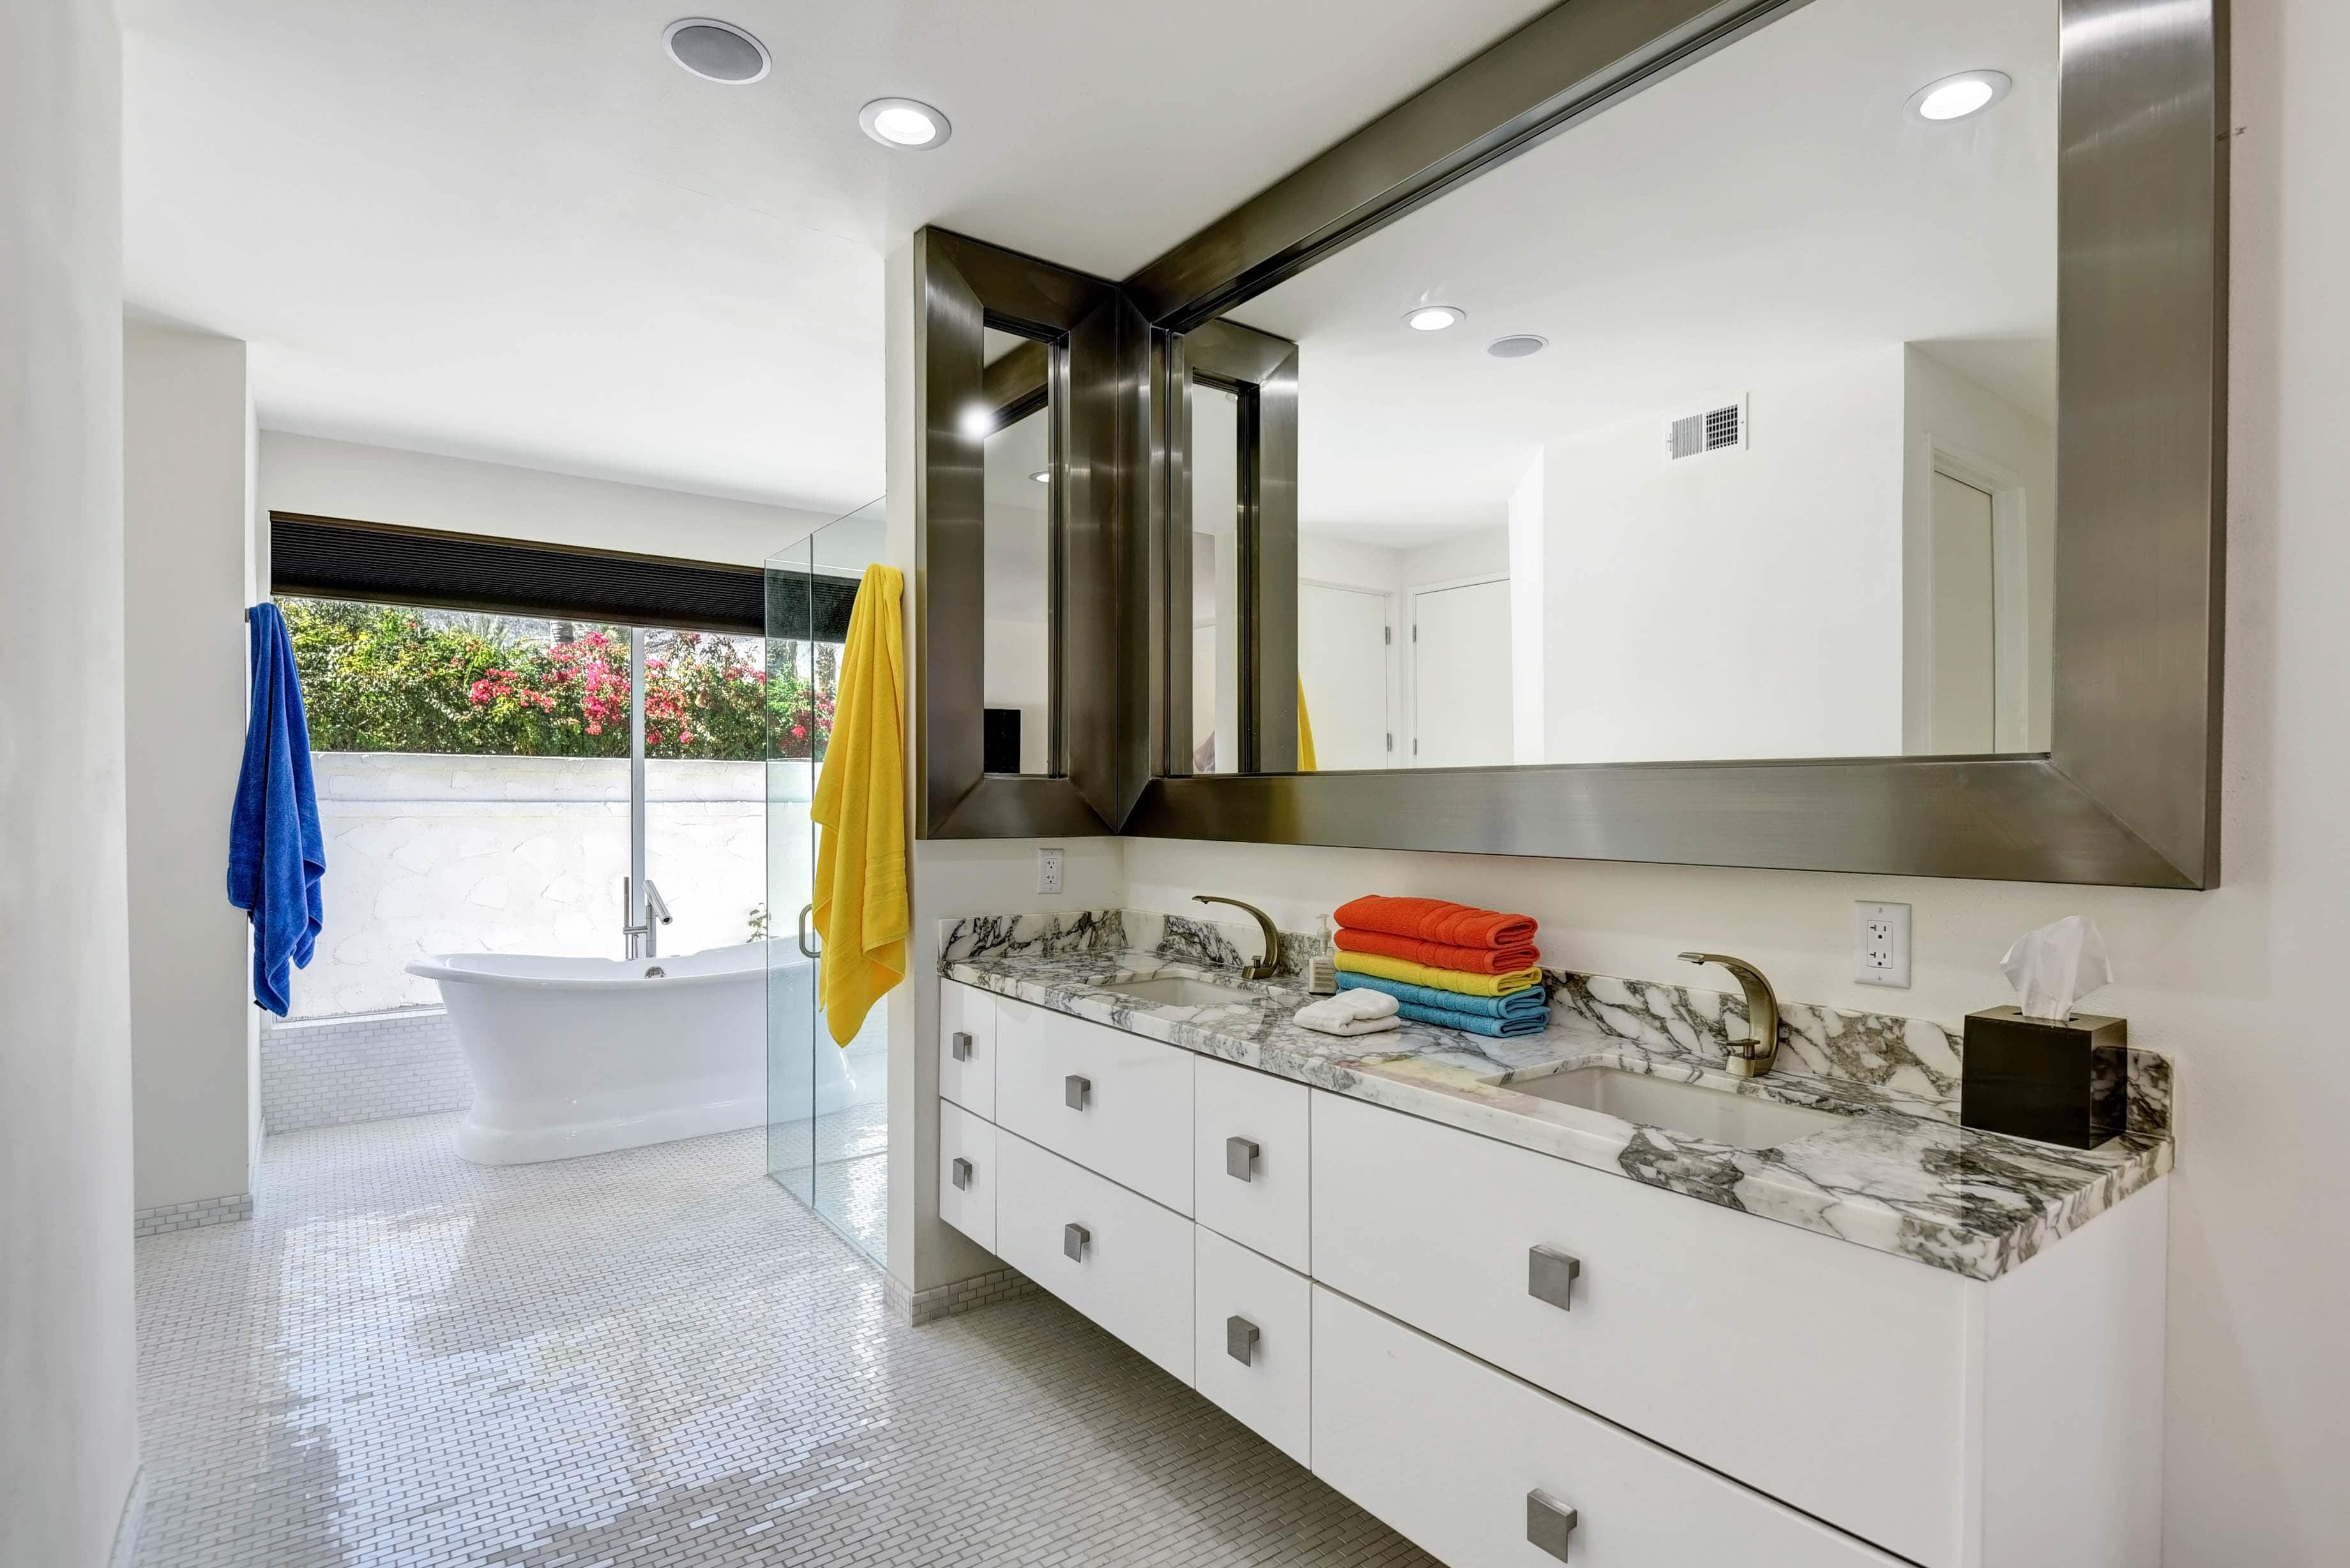 Bathroom Vanities With Sitting Area Premium Quality Bathroom Vanities Near North Hollywood Cabinet